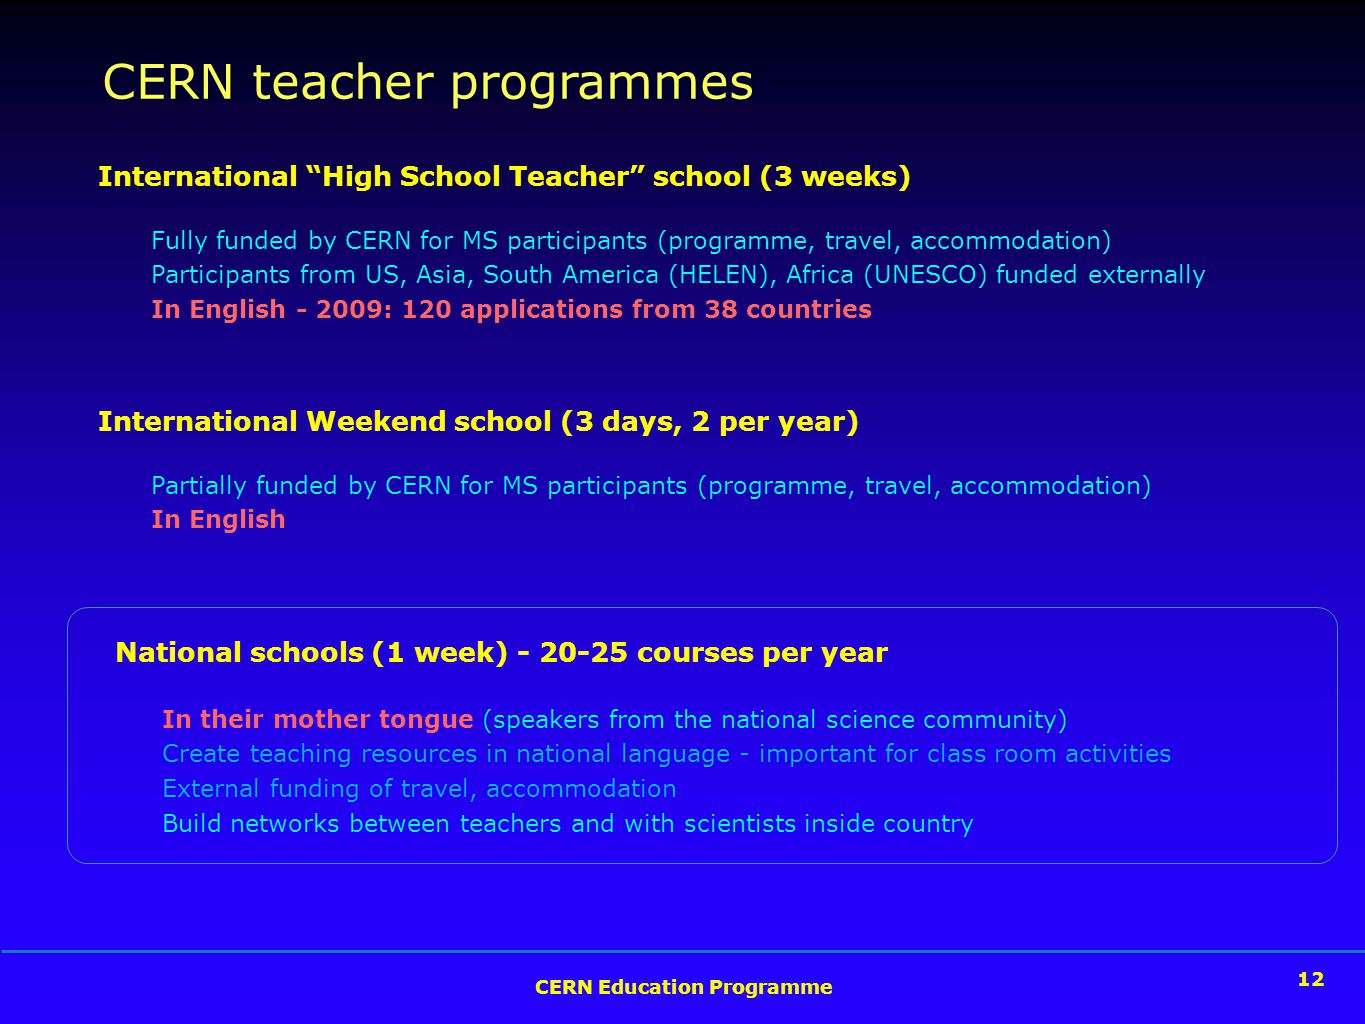 12 CERN Education Programme 12 International High School Teacher school (3 weeks) Fully funded by CERN for MS participants (programme, travel, accommodation) Participants from US, Asia, South America (HELEN), Africa (UNESCO) funded externally In English - 2009: 120 applications from 38 countries National schools (1 week) - 20-25 courses per year In their mother tongue (speakers from the national science community) Create teaching resources in national language - important for class room activities External funding of travel, accommodation Build networks between teachers and with scientists inside country CERN teacher programmes International Weekend school (3 days, 2 per year) Partially funded by CERN for MS participants (programme, travel, accommodation) In English